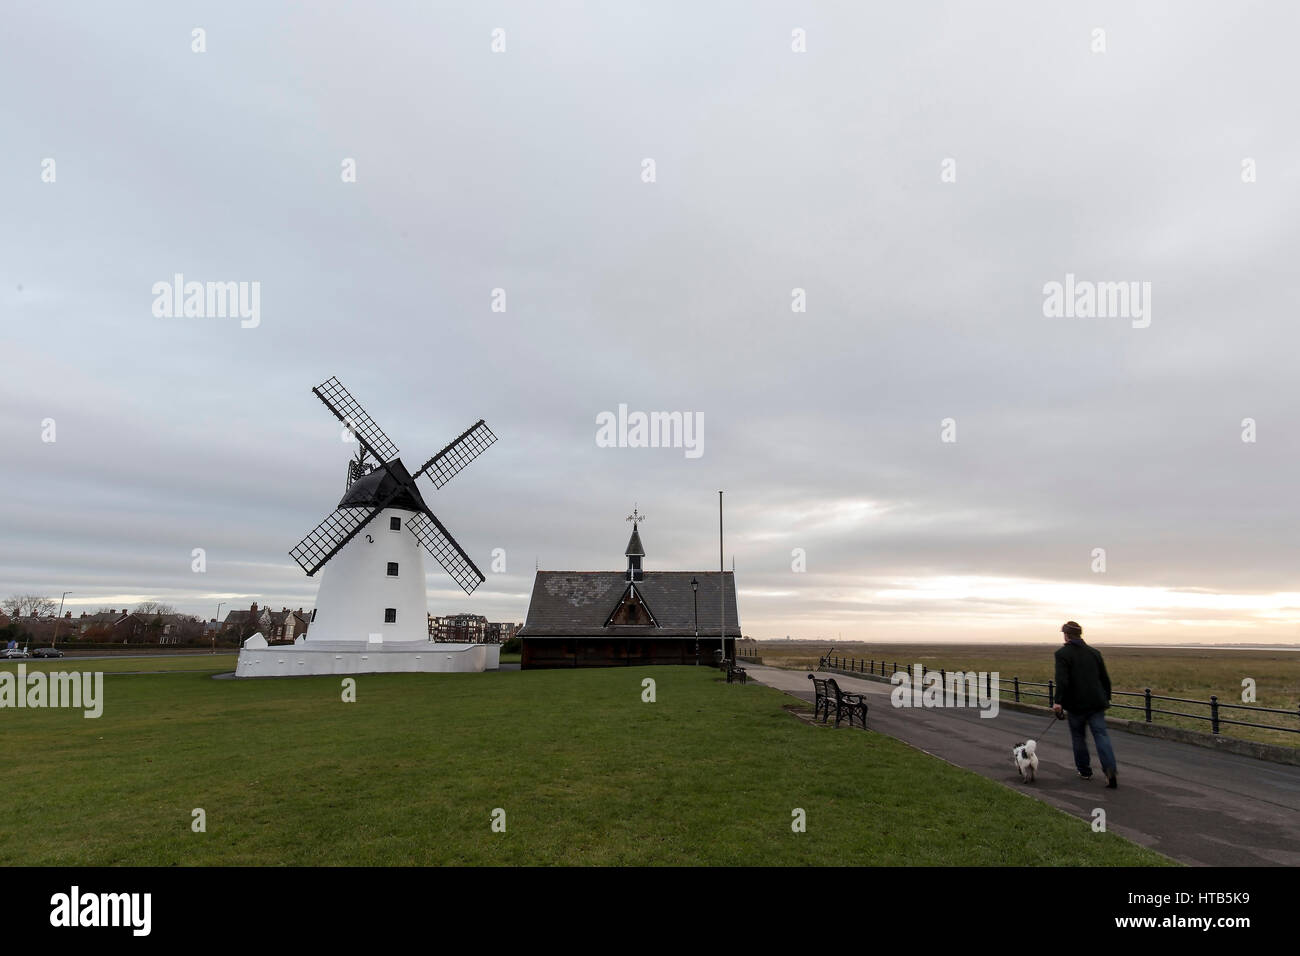 Lytham Windmill is situated on Lytham Green in the coastal town of Lytham St Annes, Lancashire, England. A man walks - Stock Image